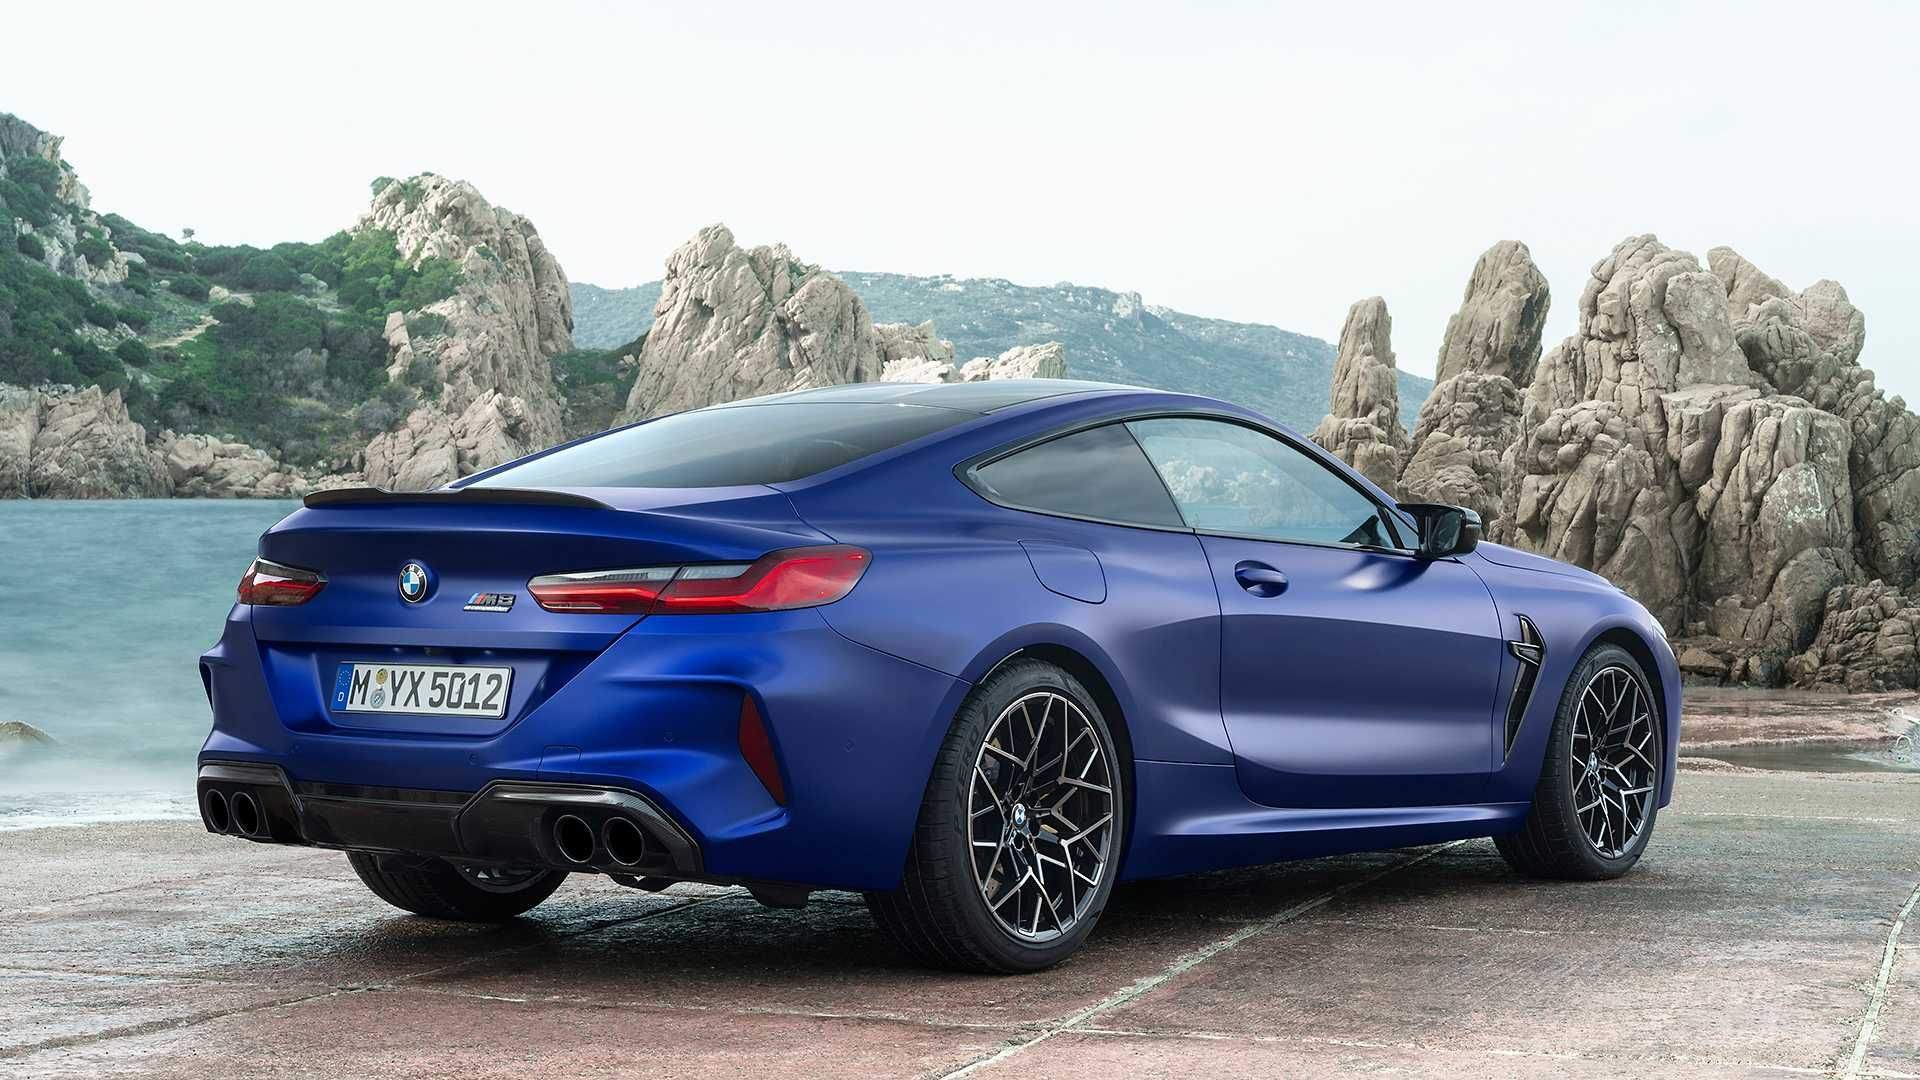 The New Bmw M8 Coupe And Convertible Are Finally Here And They